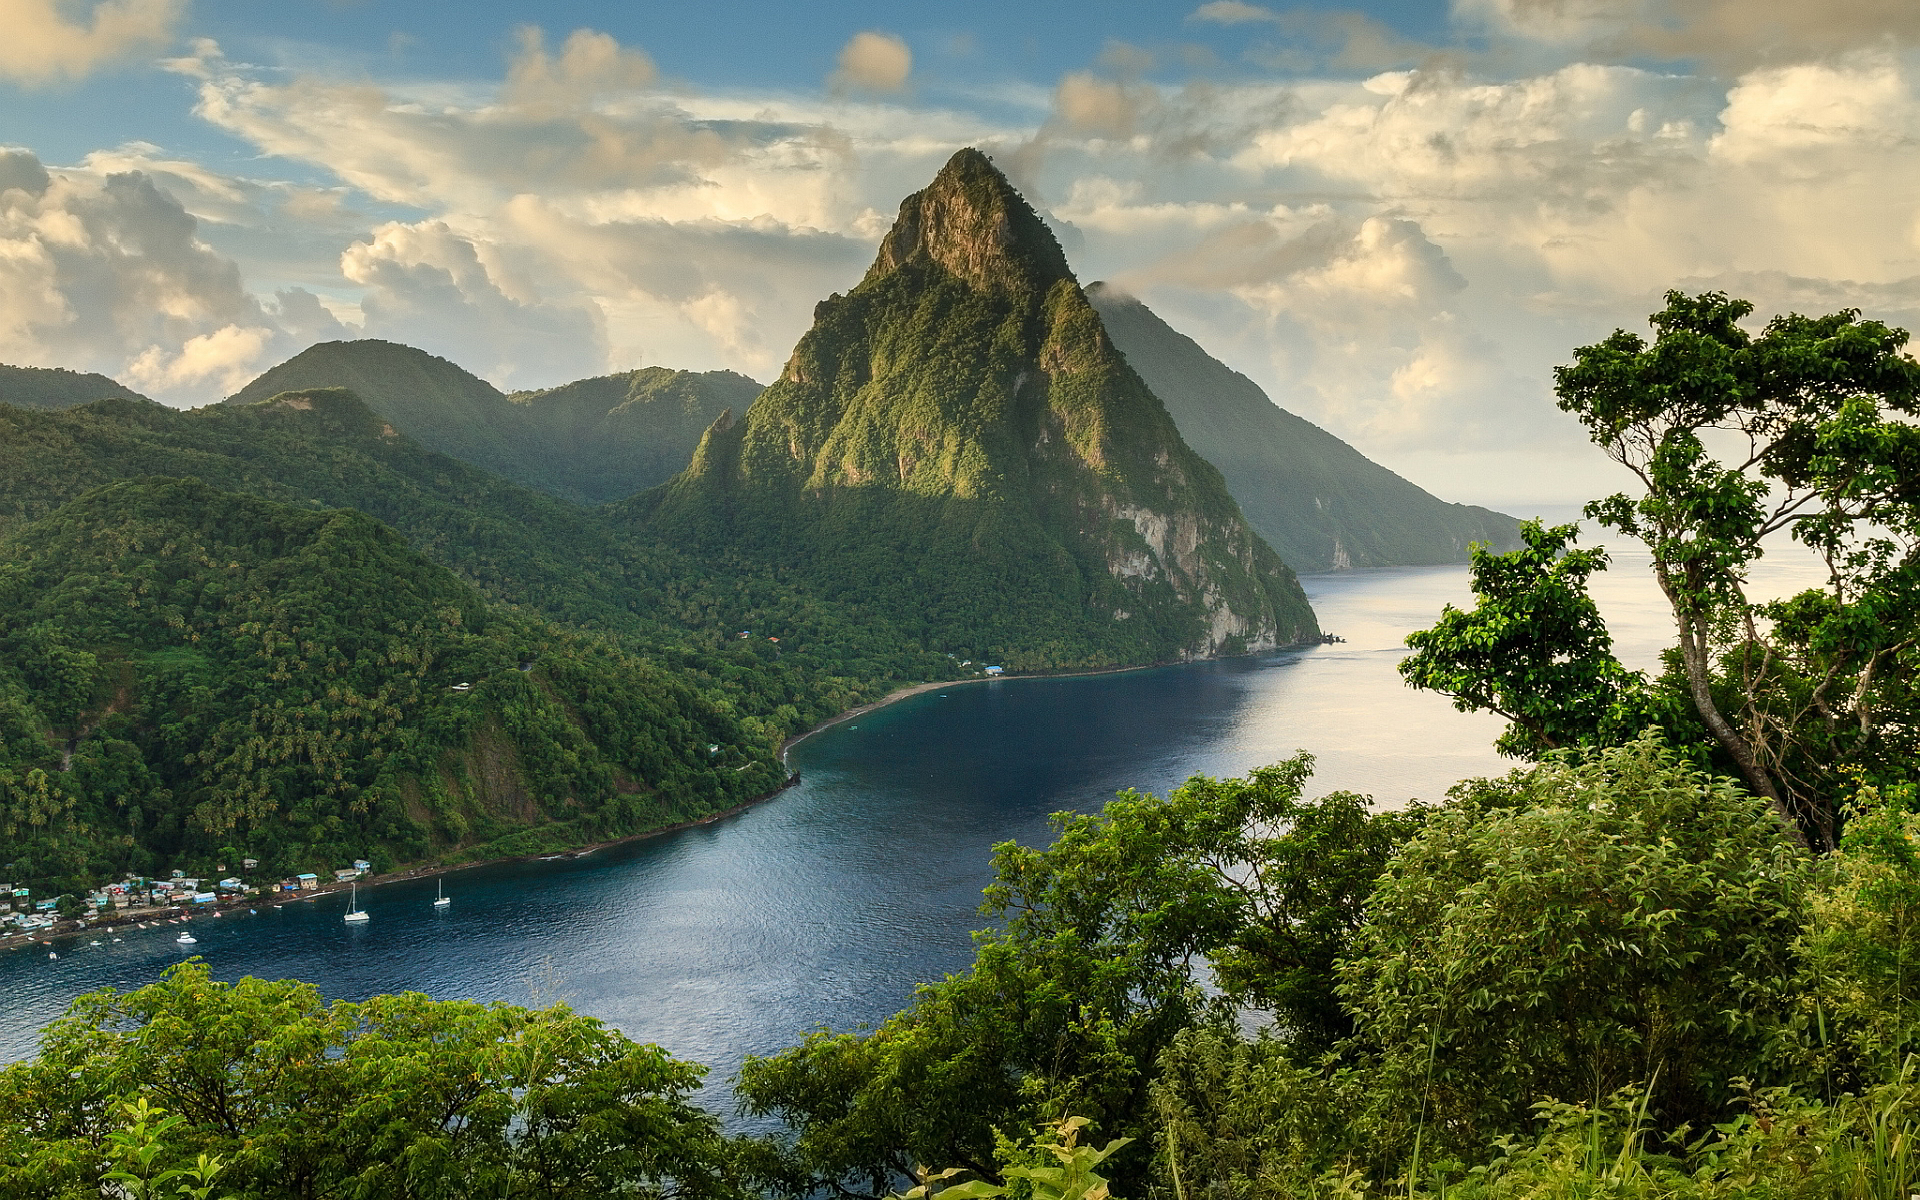 St. Lucia Wallpaper